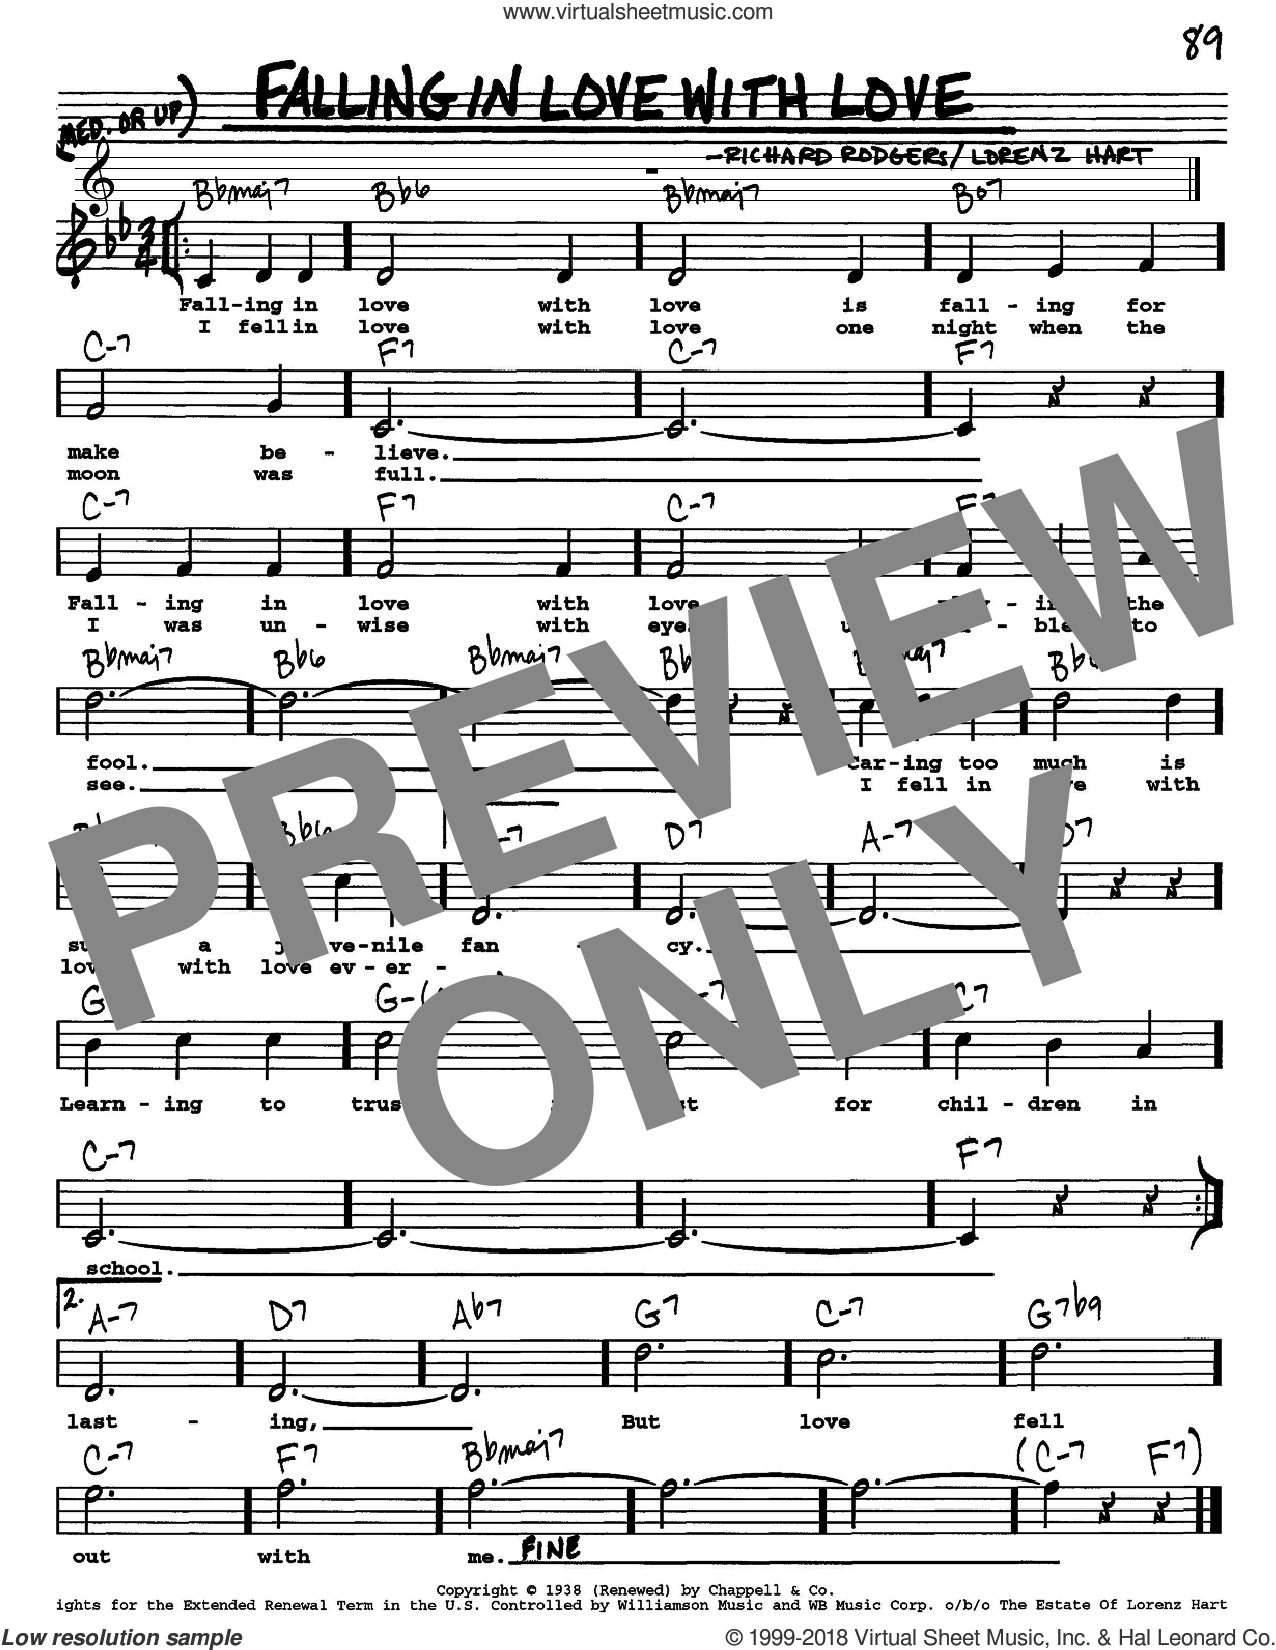 Falling In Love With Love sheet music for voice and other instruments (Vocal Volume 1) by Rodgers & Hart, Lorenz Hart and Richard Rodgers, intermediate voice. Score Image Preview.